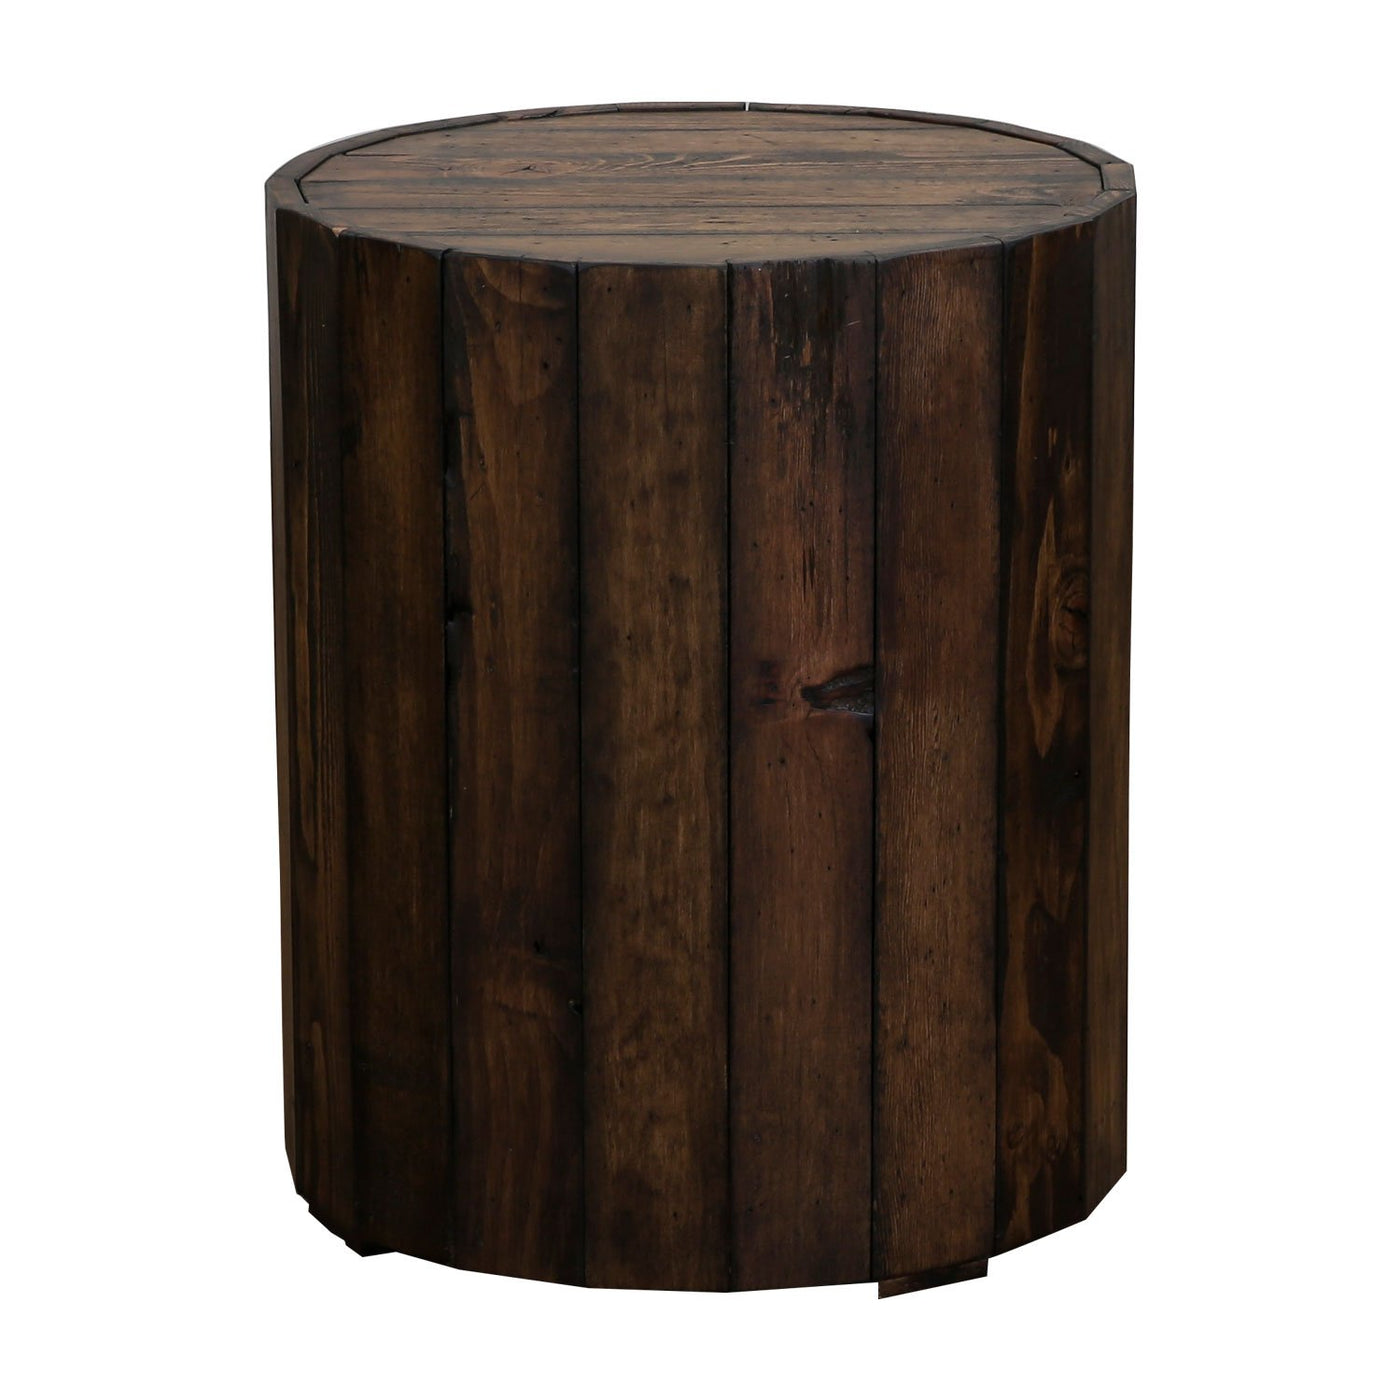 BROOKS END TABLE T4017 05 RUSTIC PINE